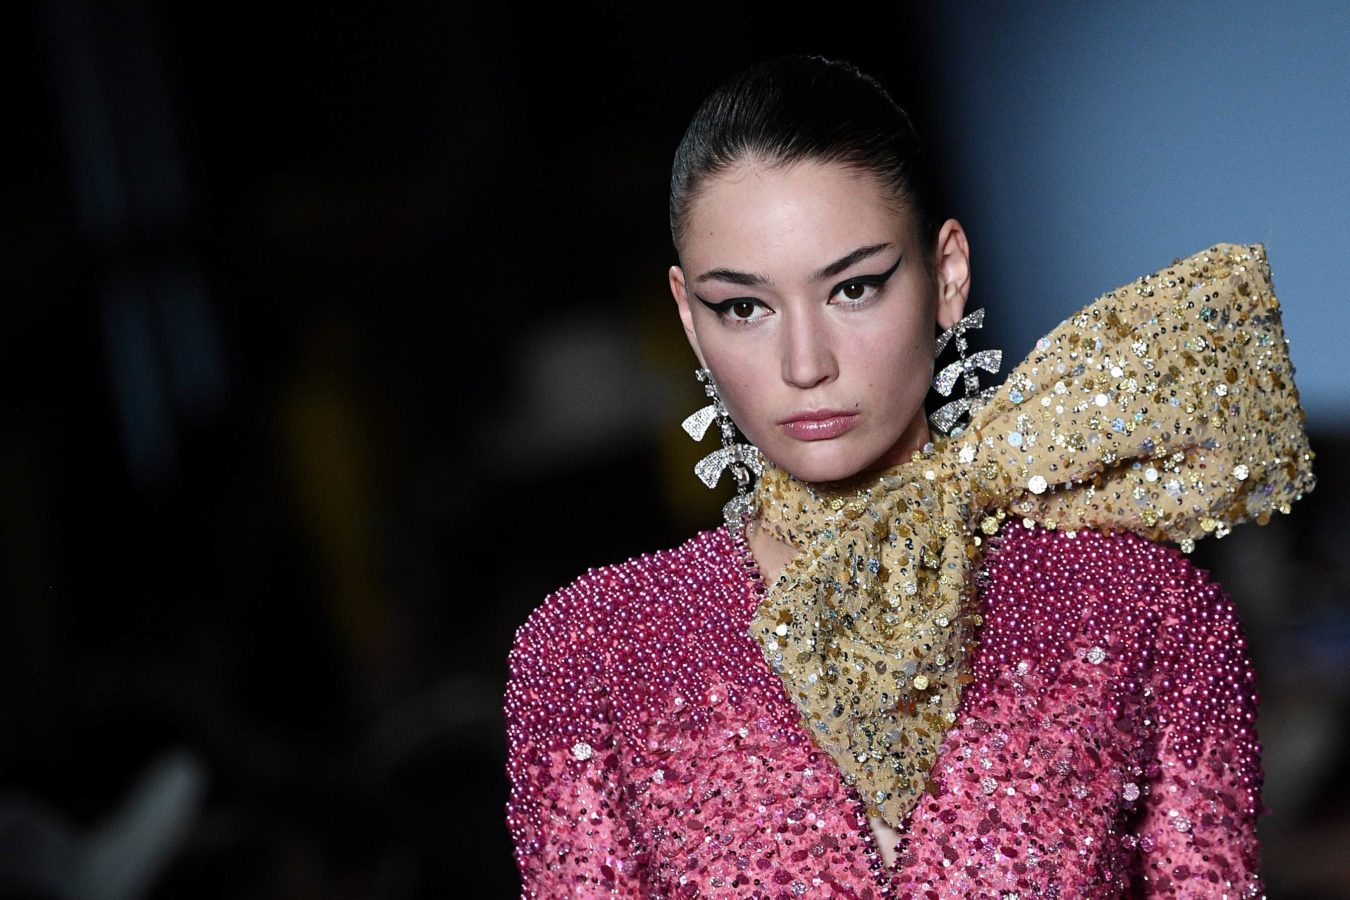 The two beauty trends that dominated the haute couture runway in Paris